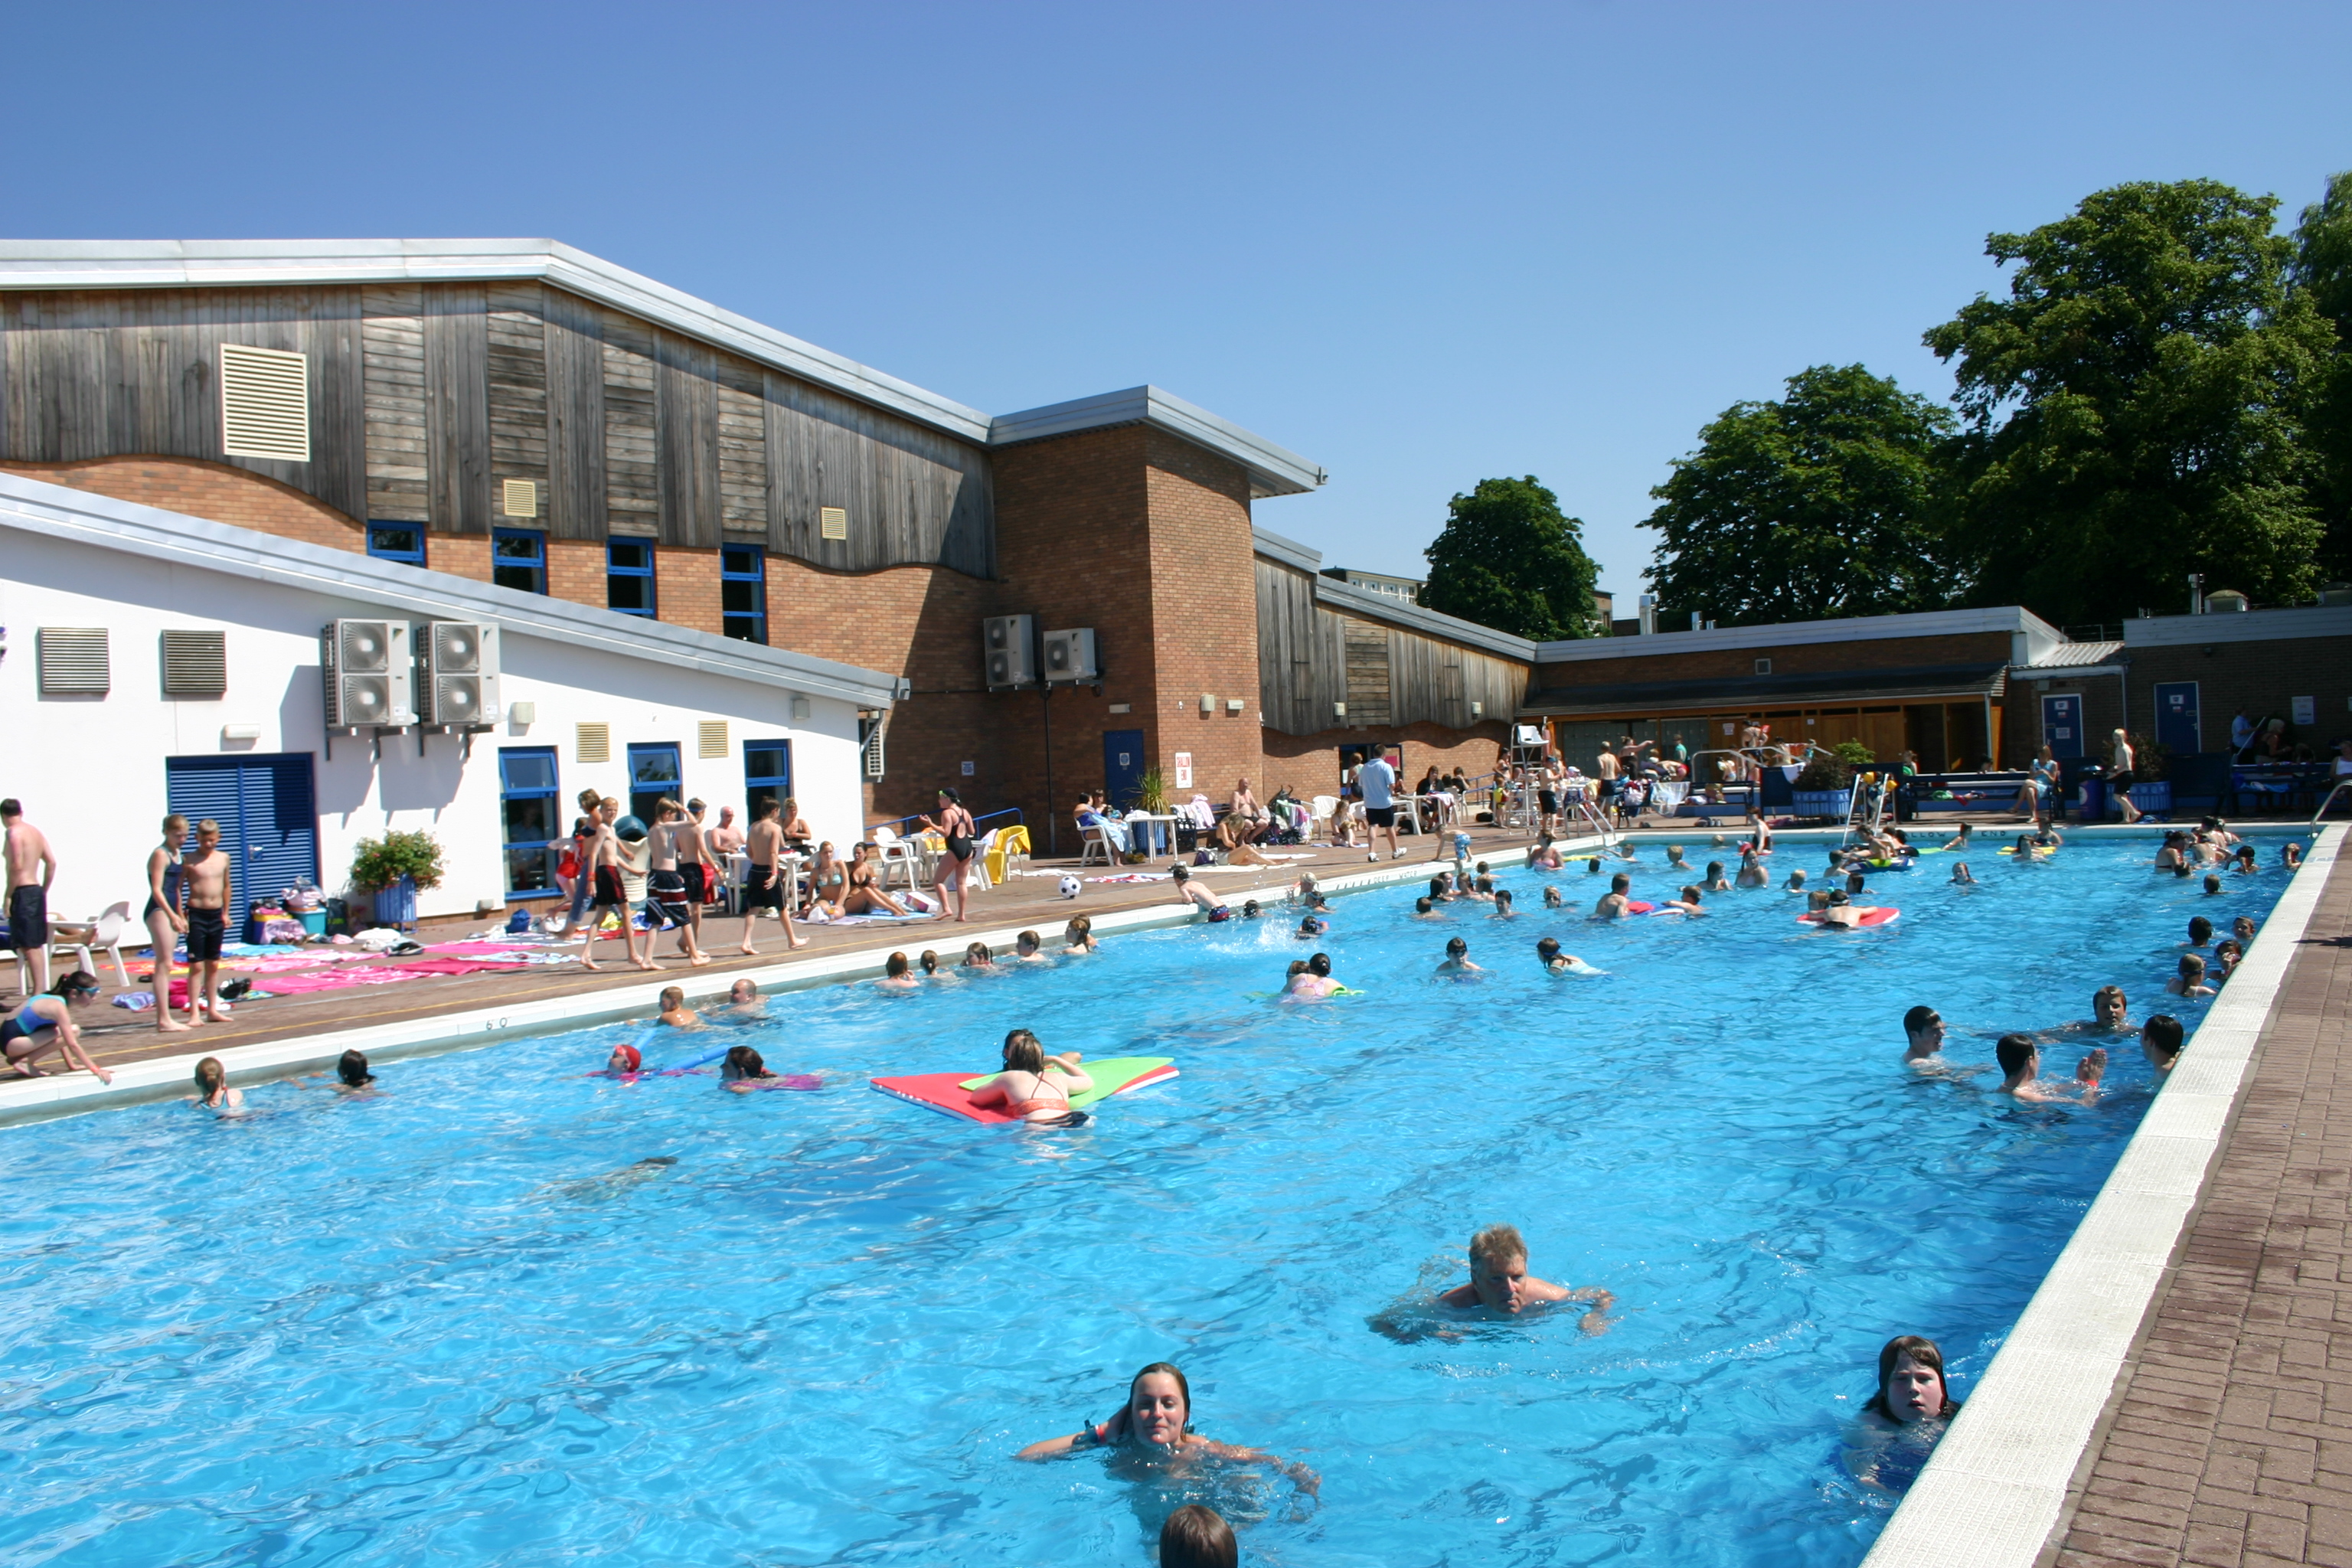 Outdoor pool at hood park leisure centre north west - Outdoor swimming pools north west ...